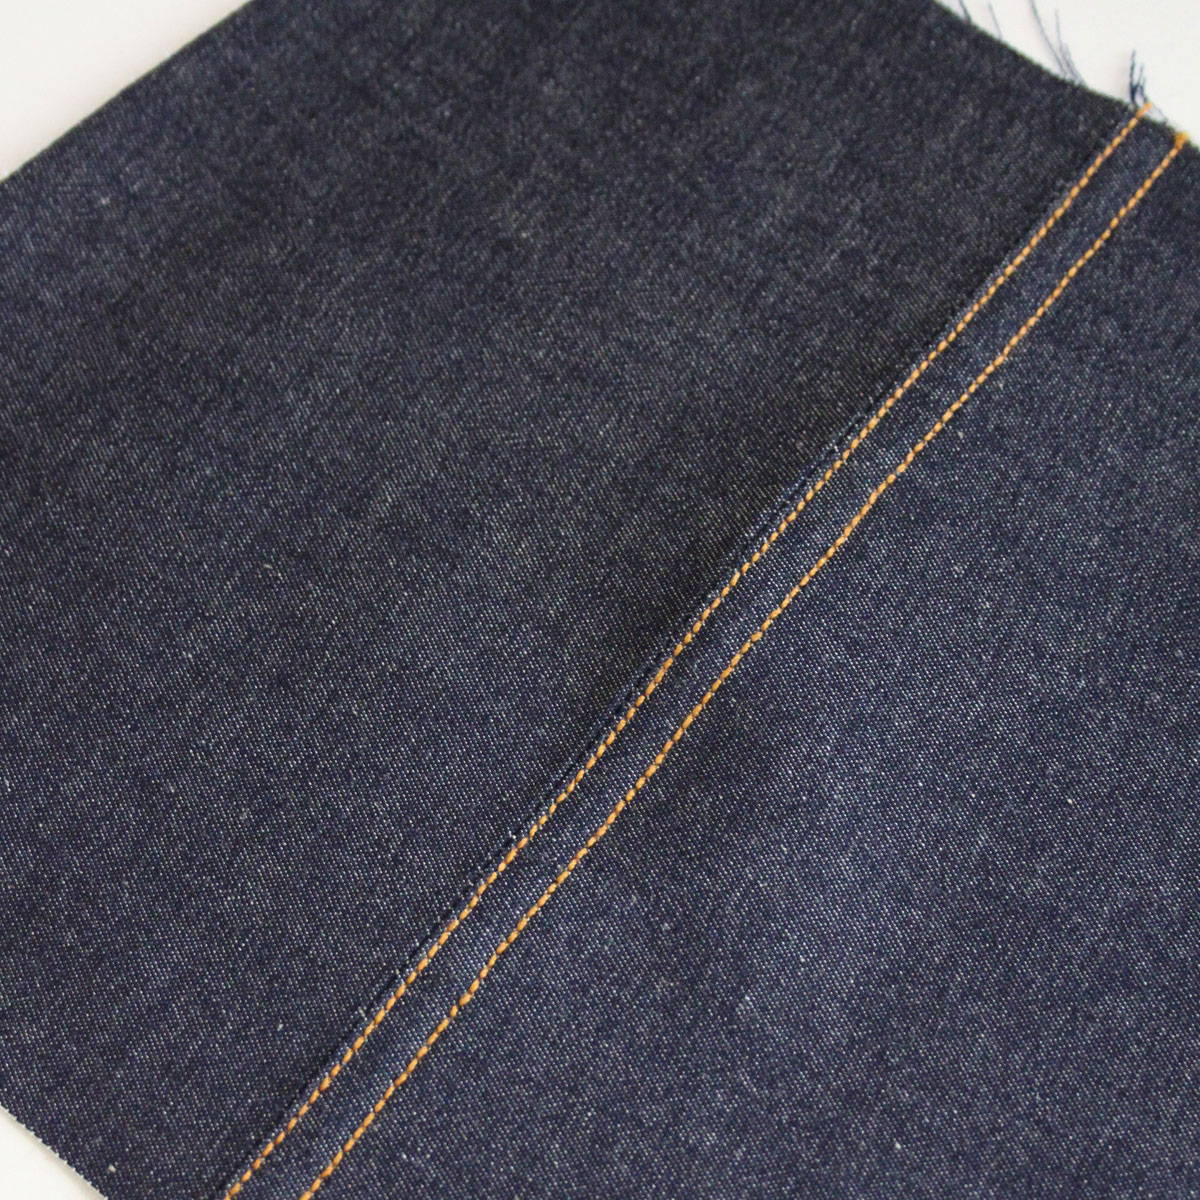 How to sew a flat felled seam